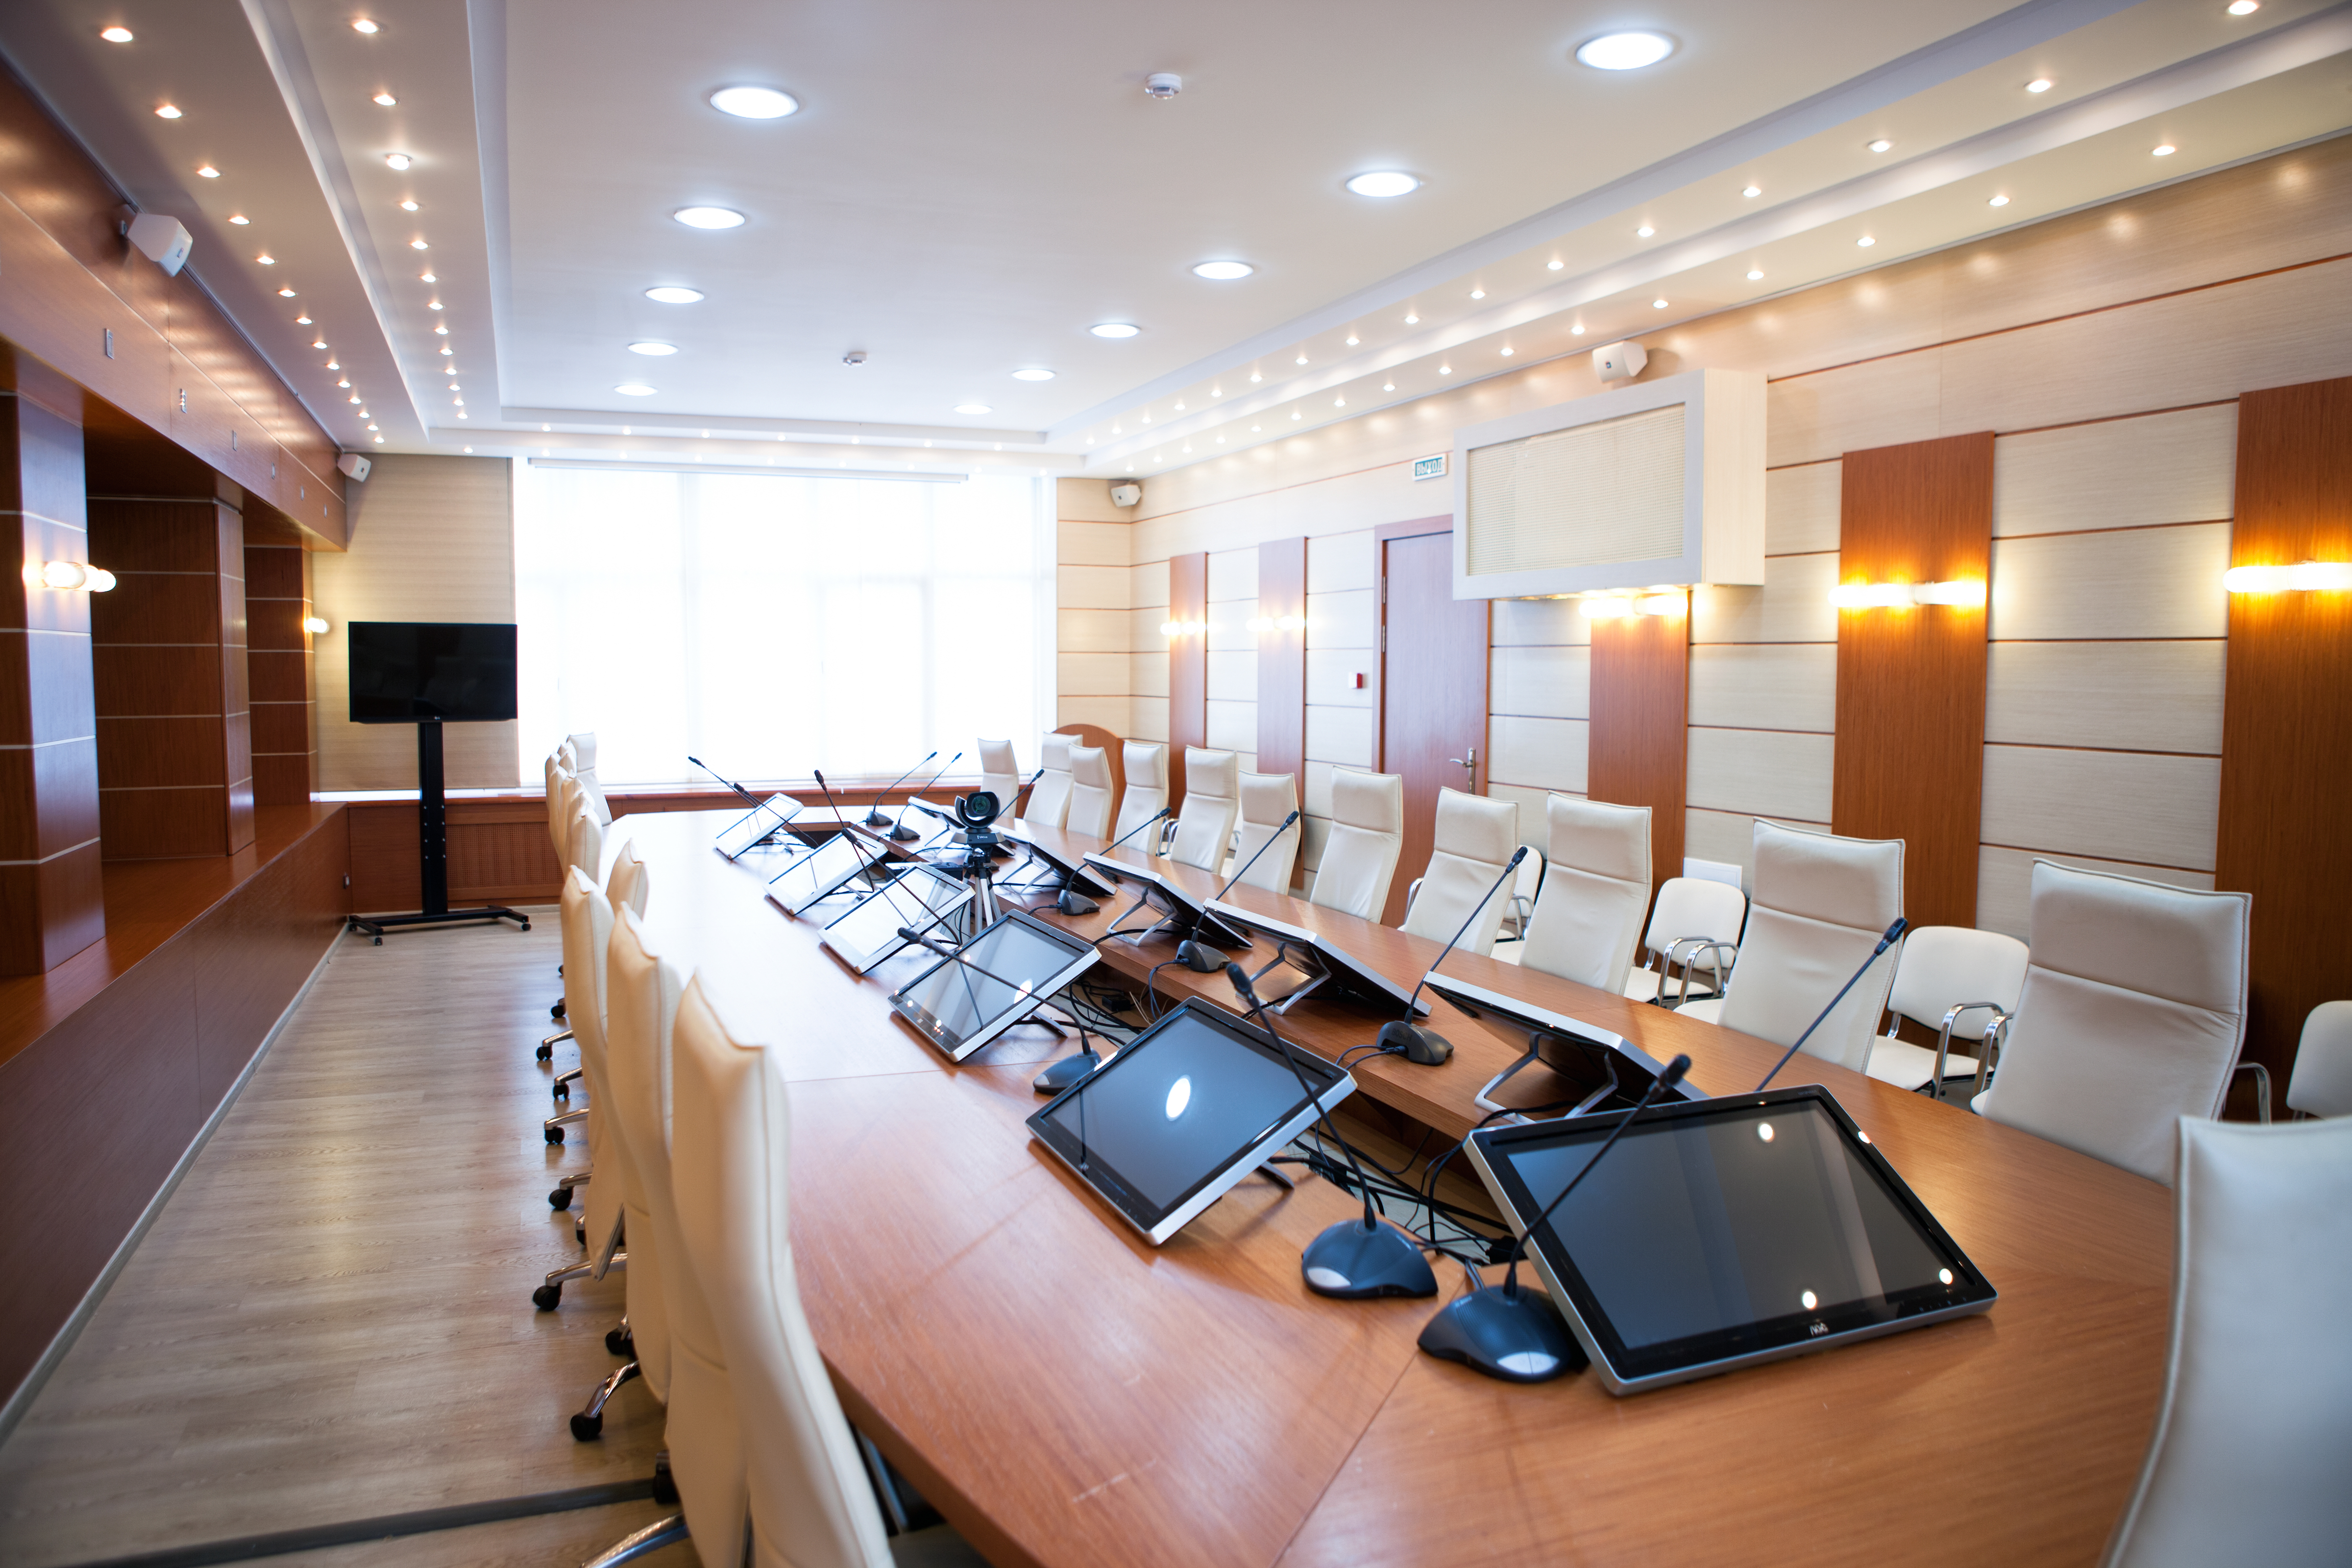 Business meeting room, Presentation, Professional, Quiet, Room, HQ Photo